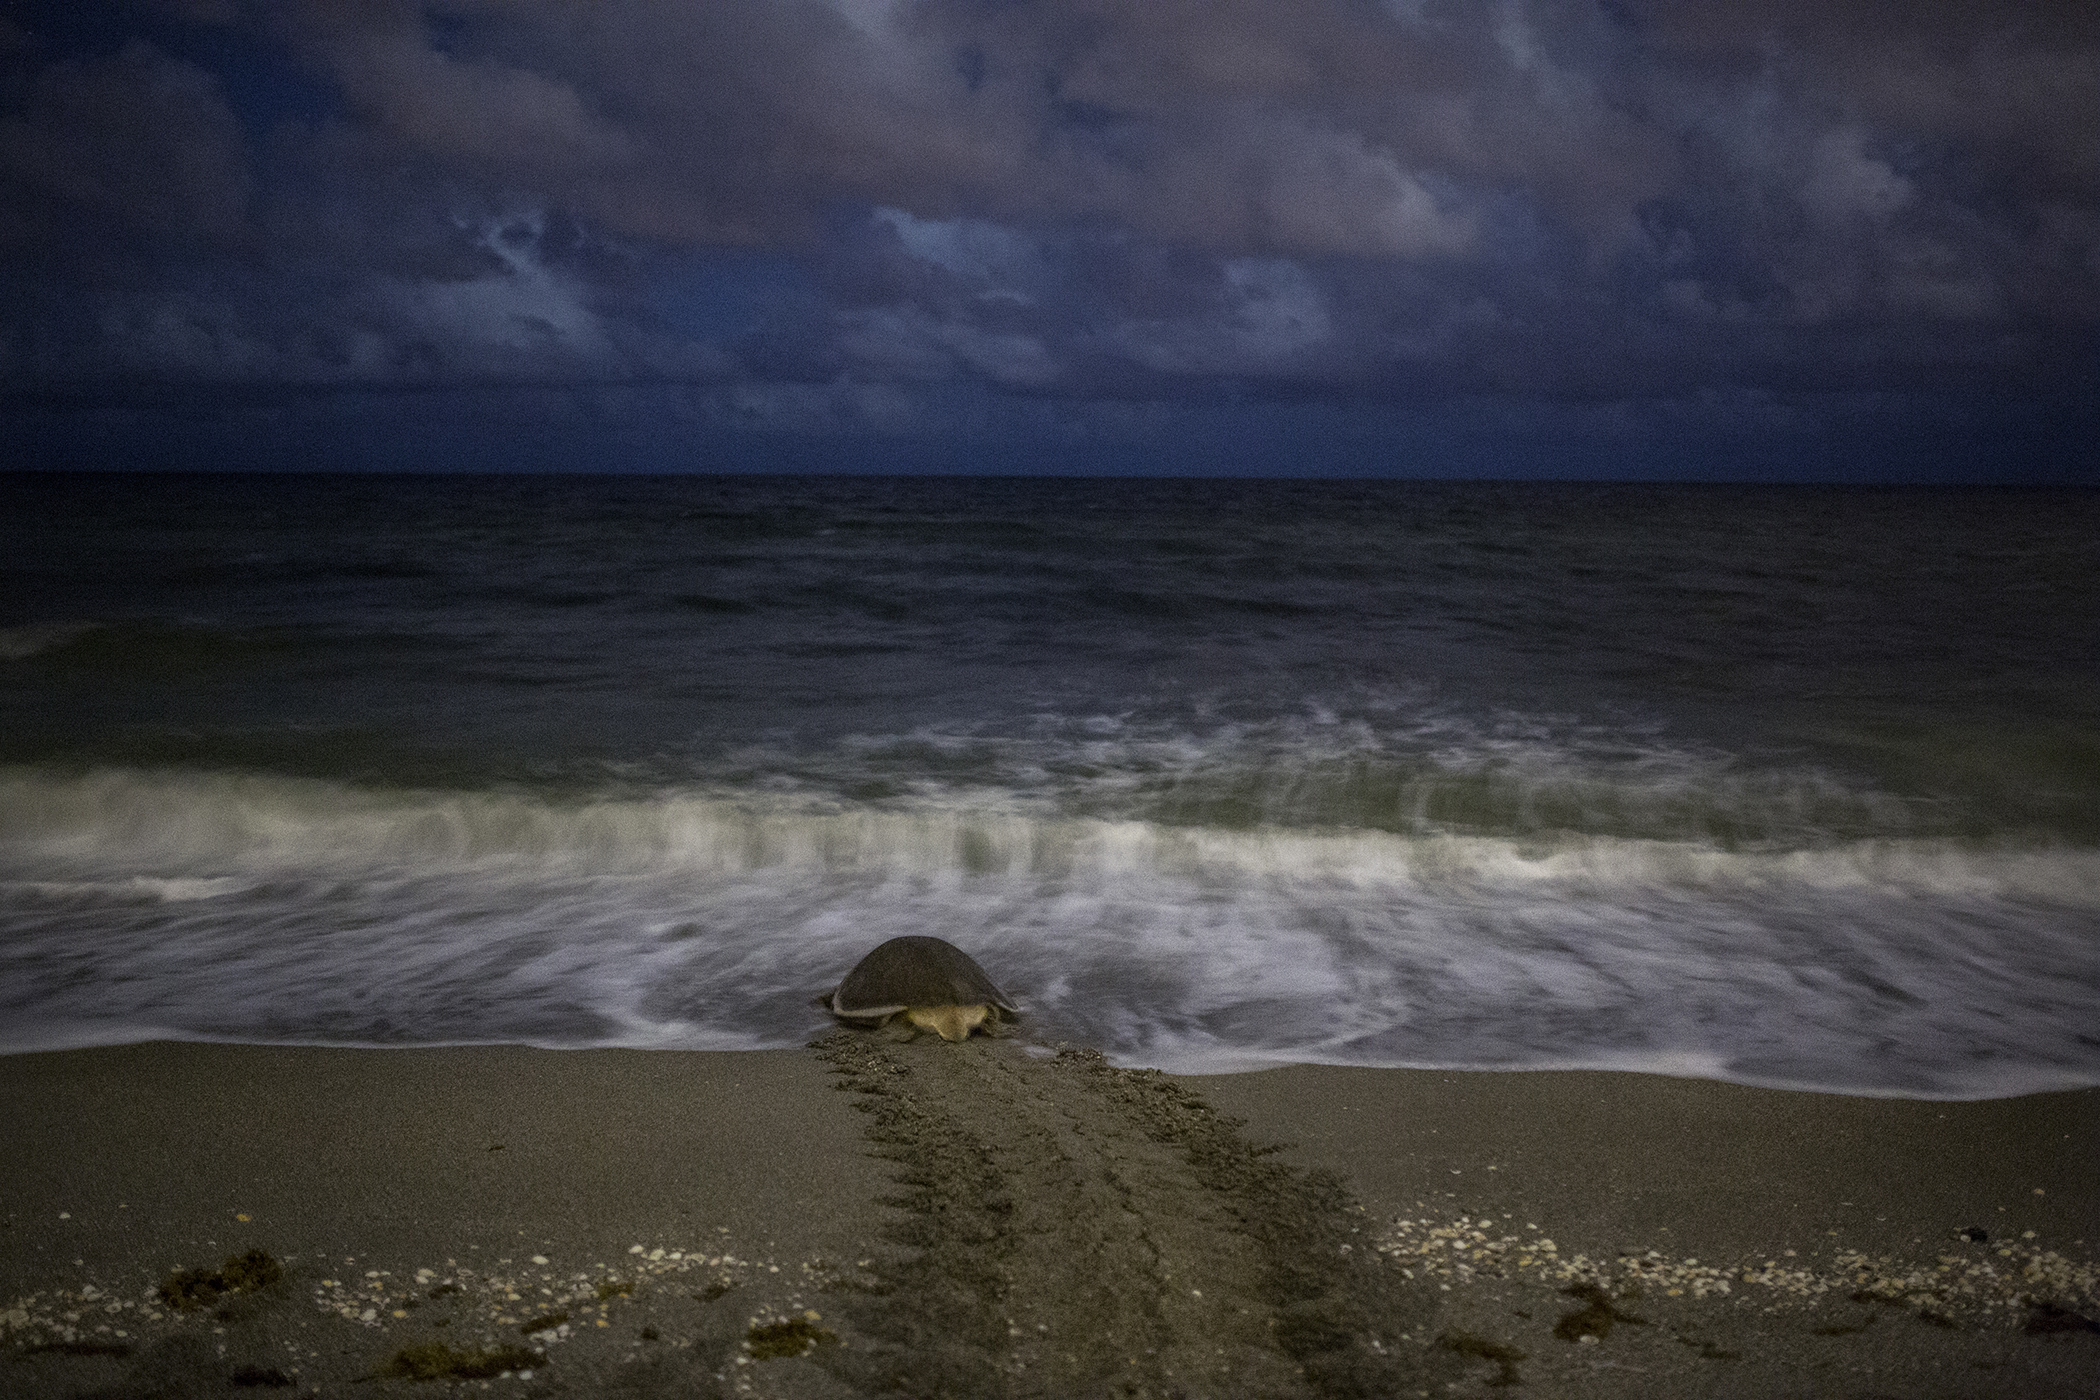 Again, since photographs weren't allowed, a quick Google Search resulted in another emotional moment that we were lucky enough to experience. Here is the Green Turtle going back into the ocean after laying her eggs. Click-thru for source.